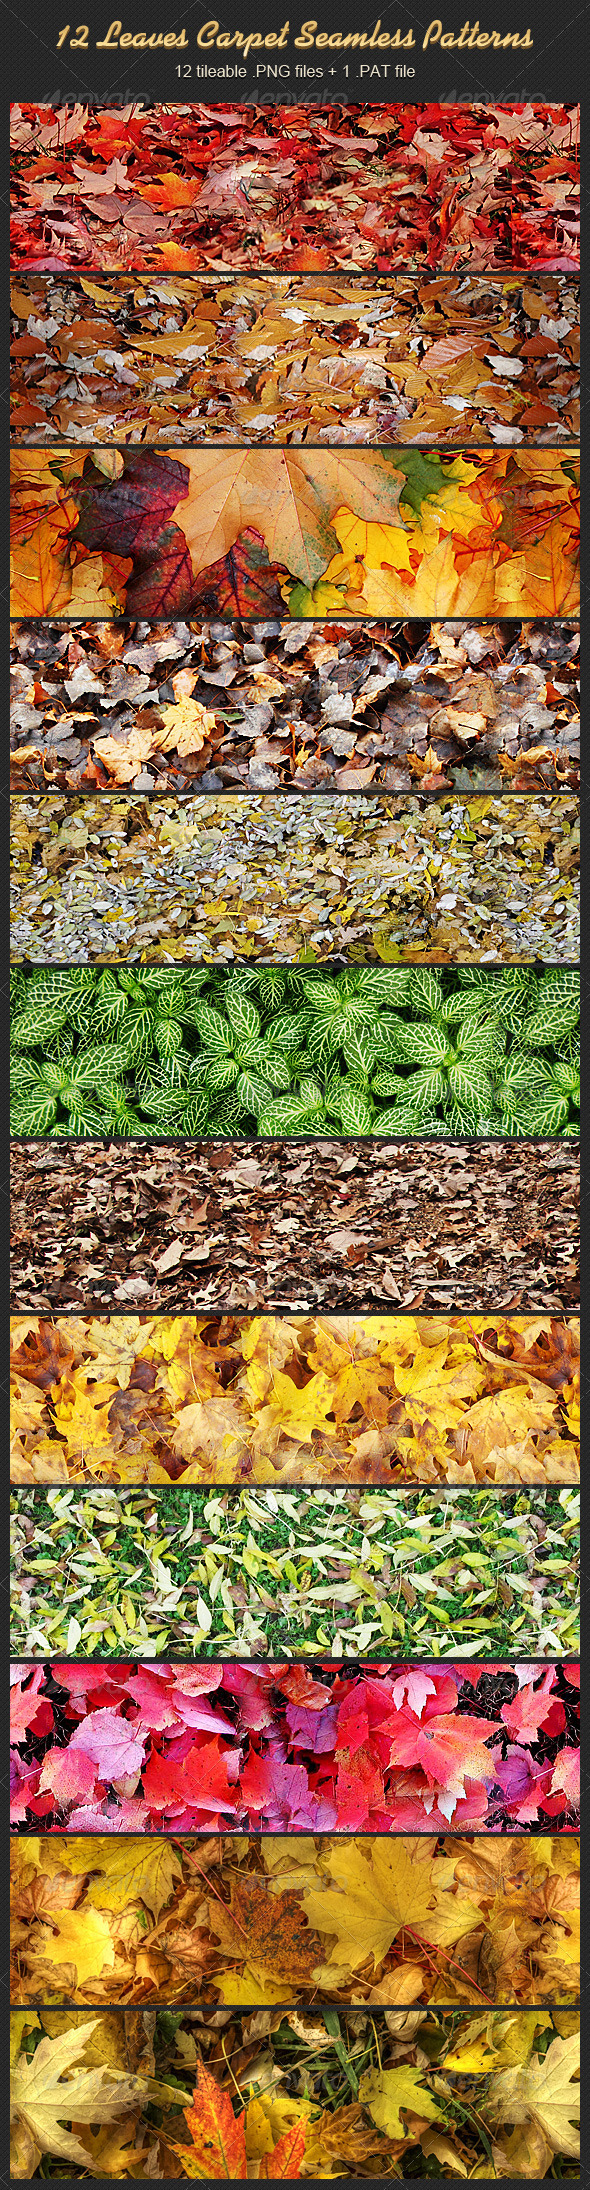 GraphicRiver 12 Leaves Carpet Seamless Patterns 5871868